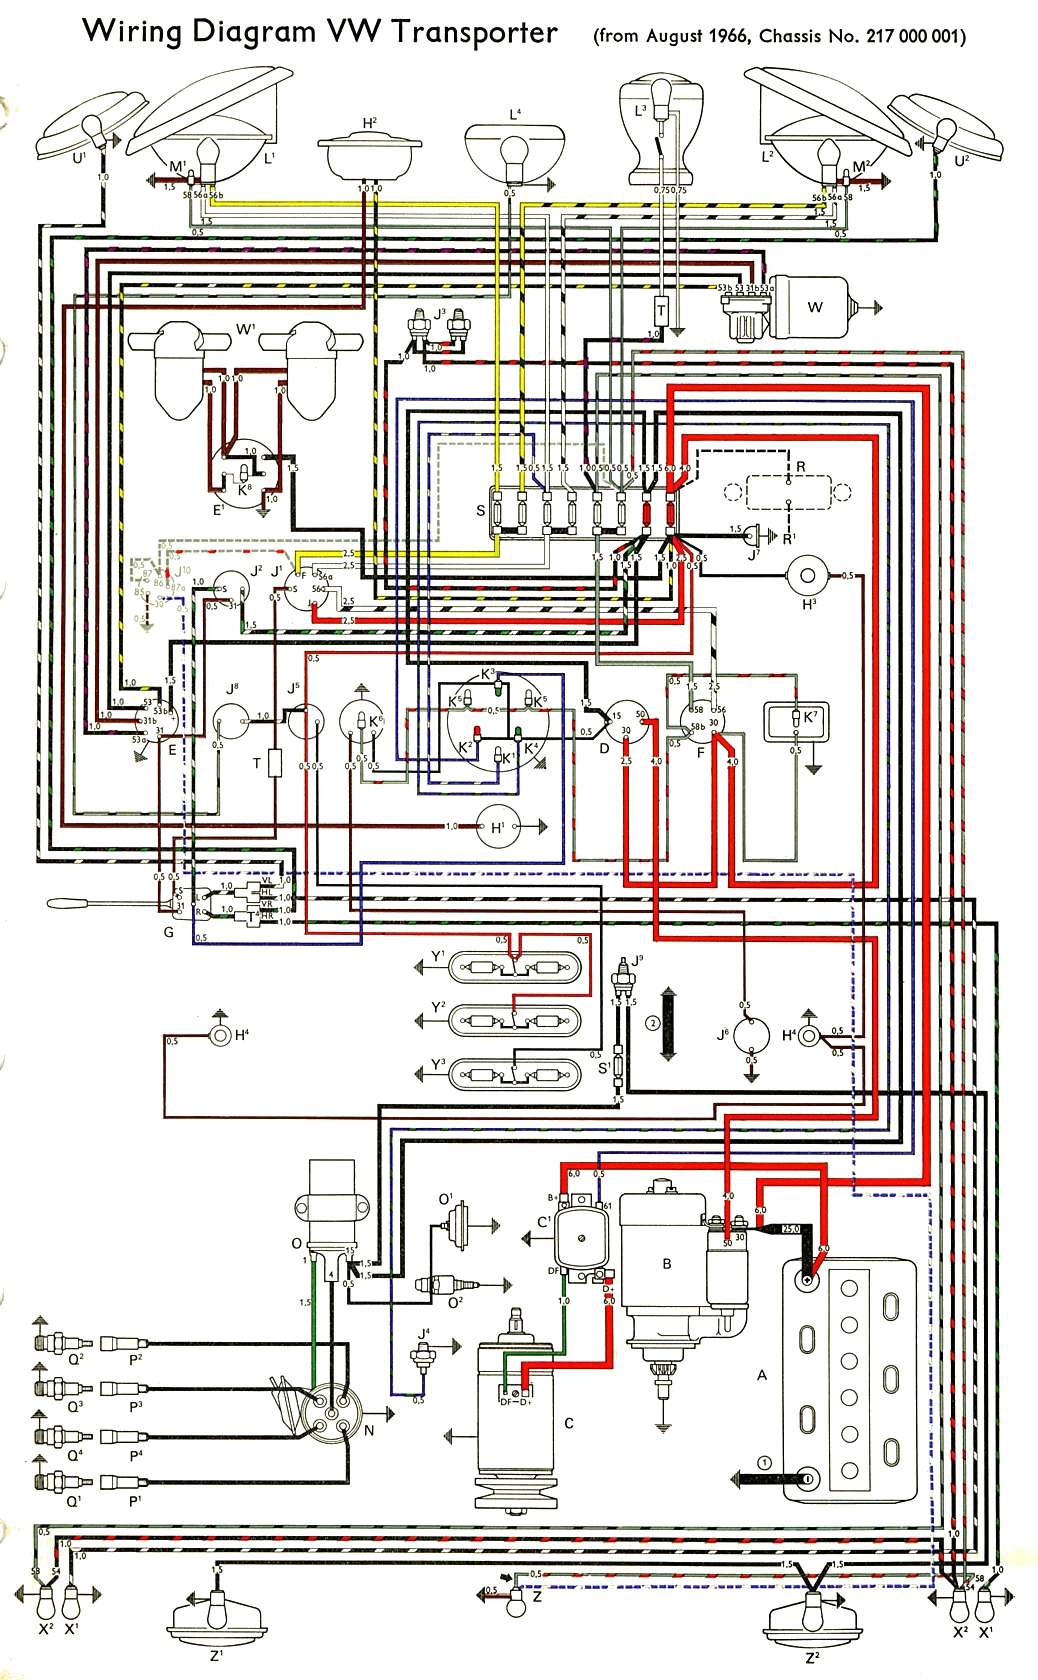 2007 Chevy Express Van Ignition Switch Wiring Wiring Rear Small Lights In Help Please The Split